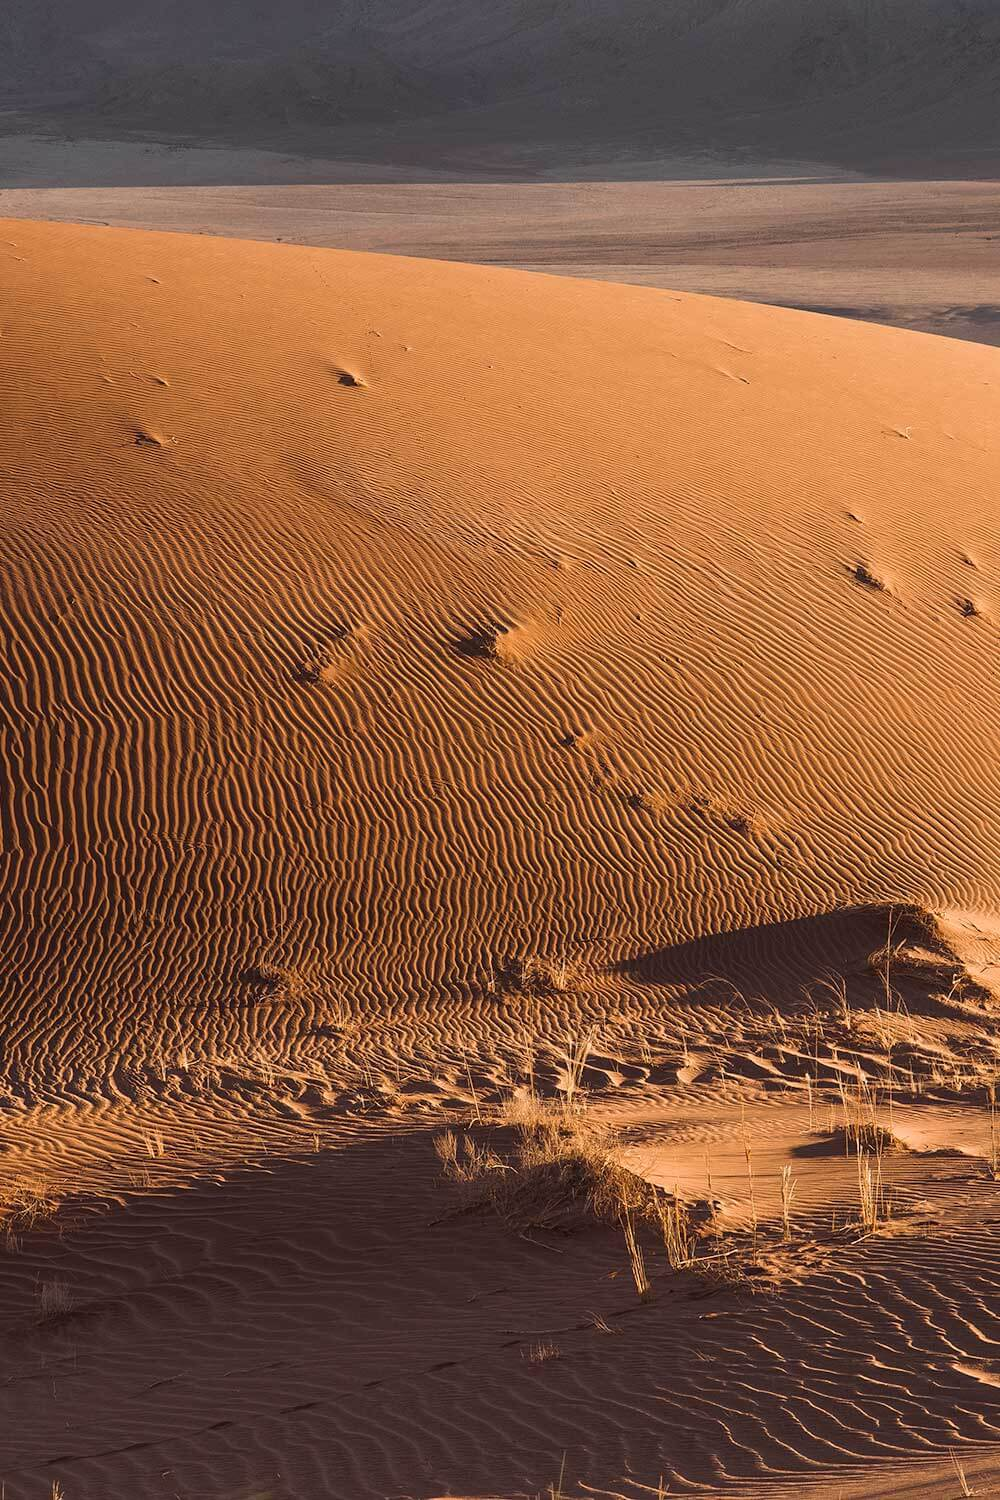 Ripples in the sand, Namibia off the beaten track in the dune belt